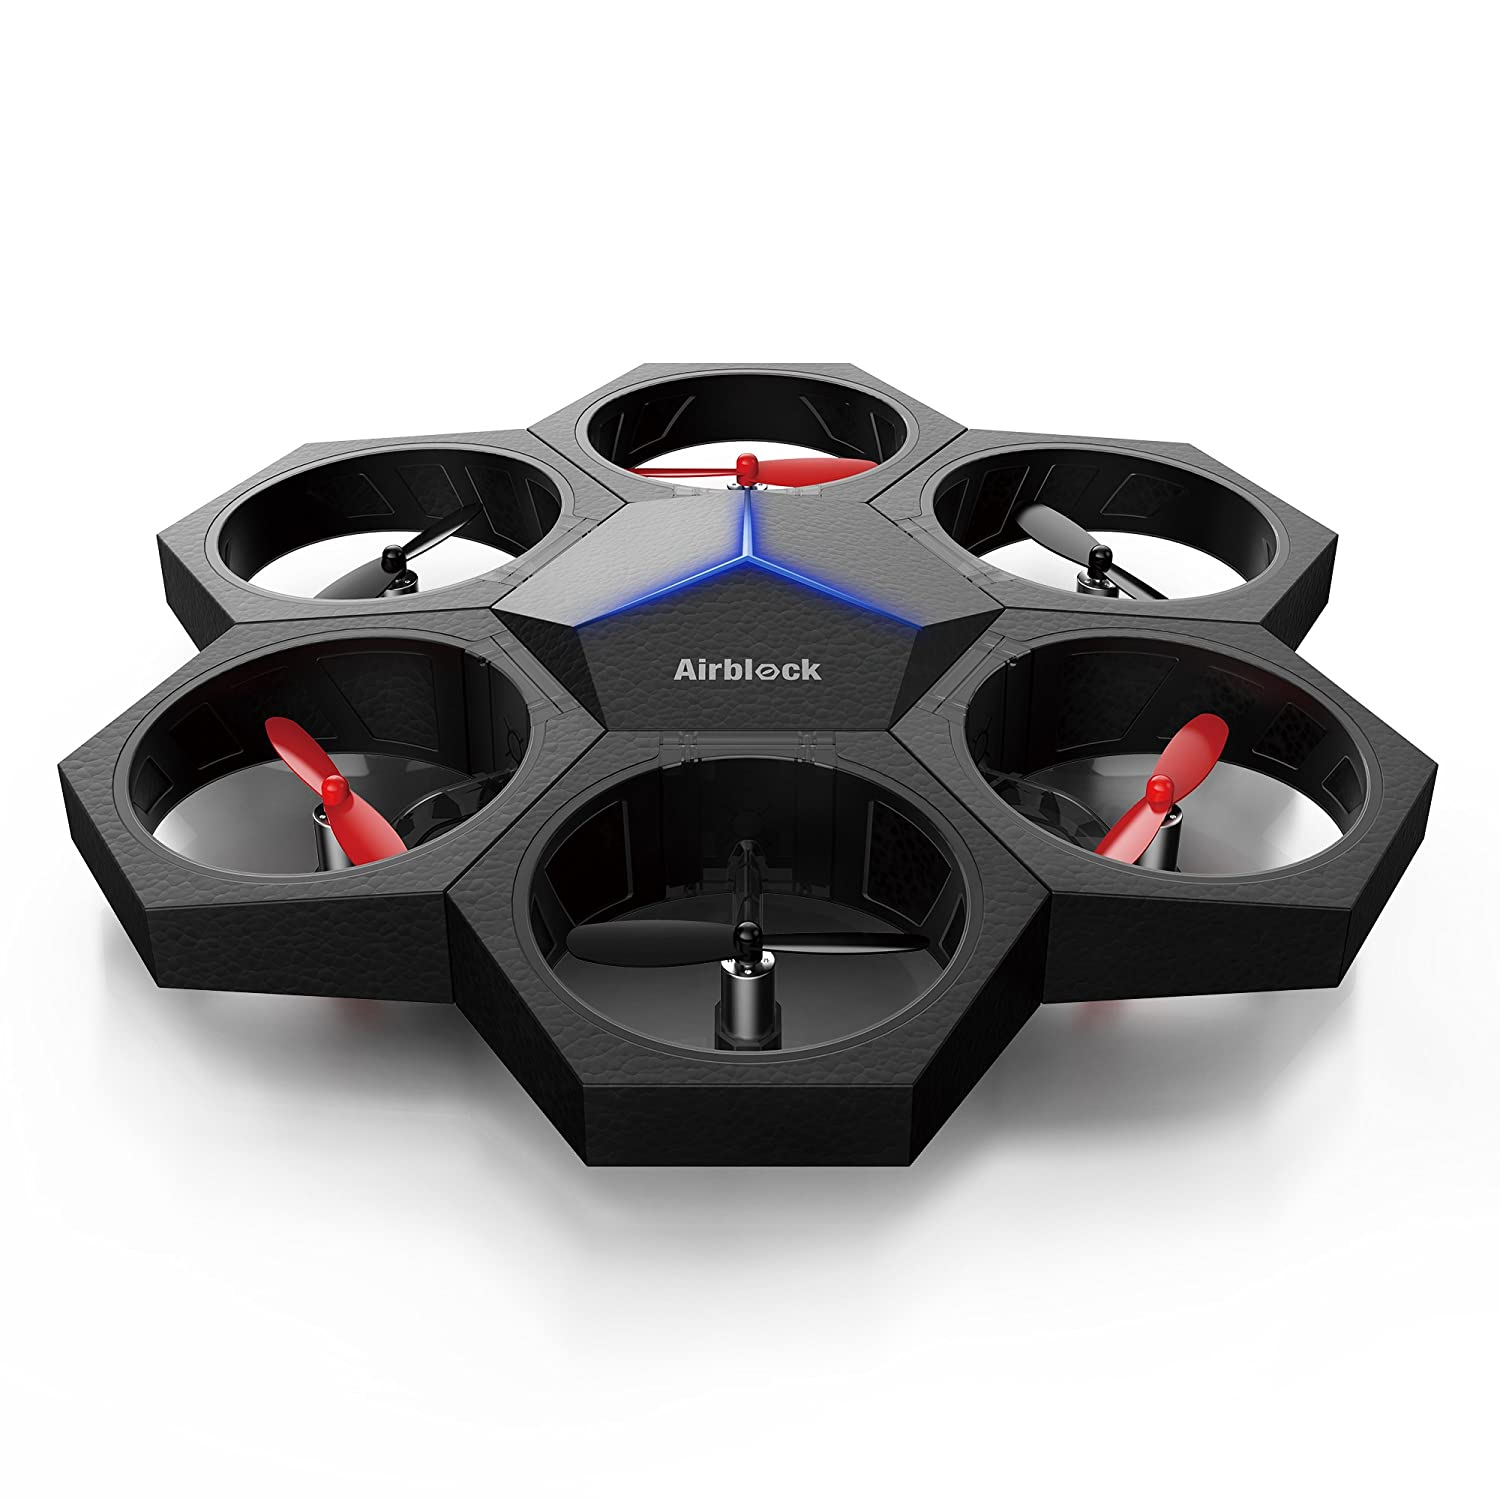 Makeblock Airblock Transformable Drone/ Hovercraft Robot